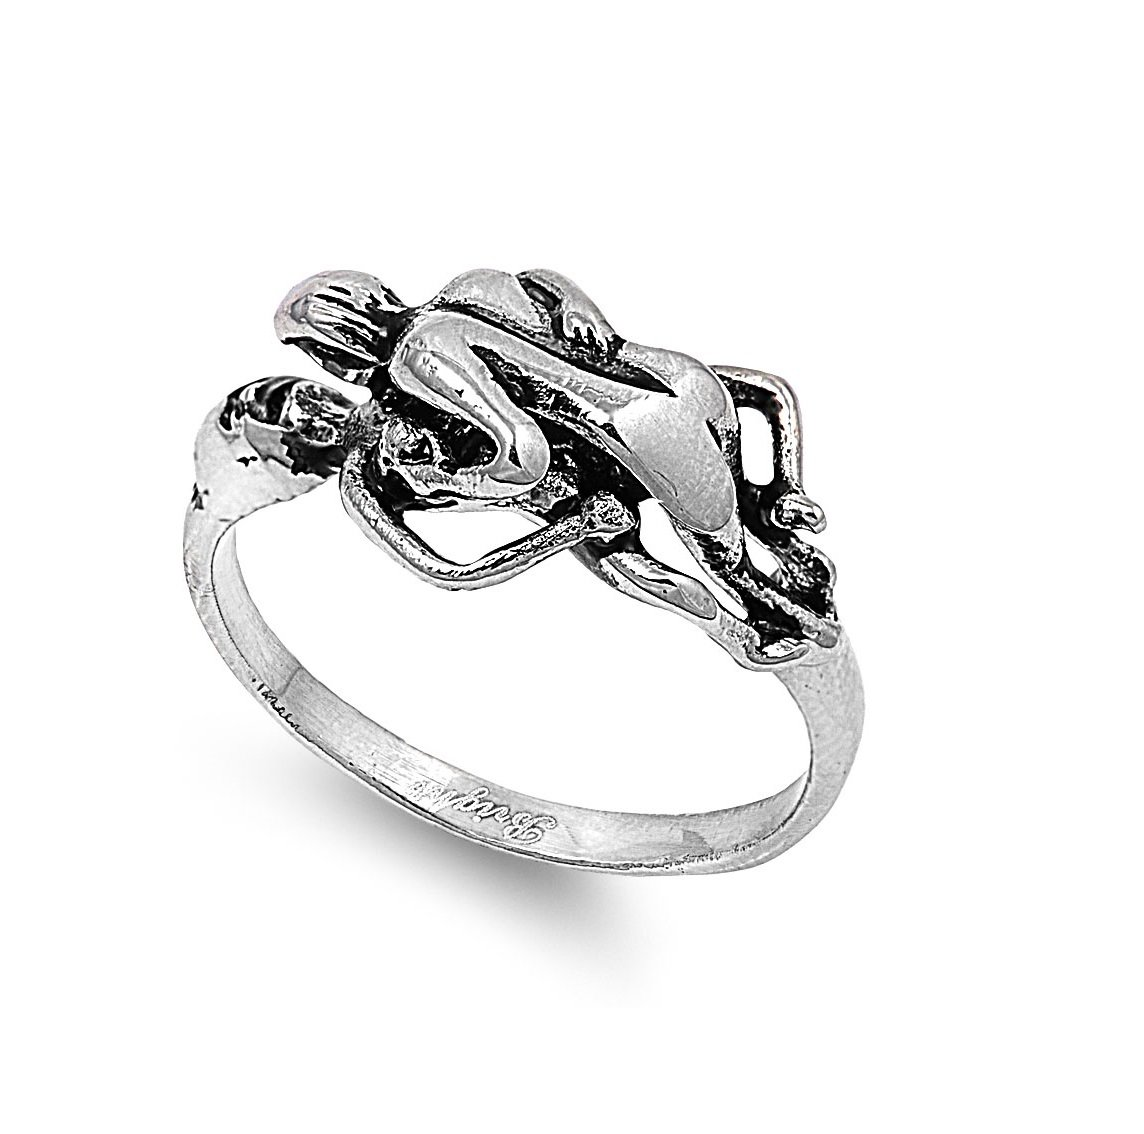 CloseoutWarehouse Stainless Steel Sex Ring Size 8